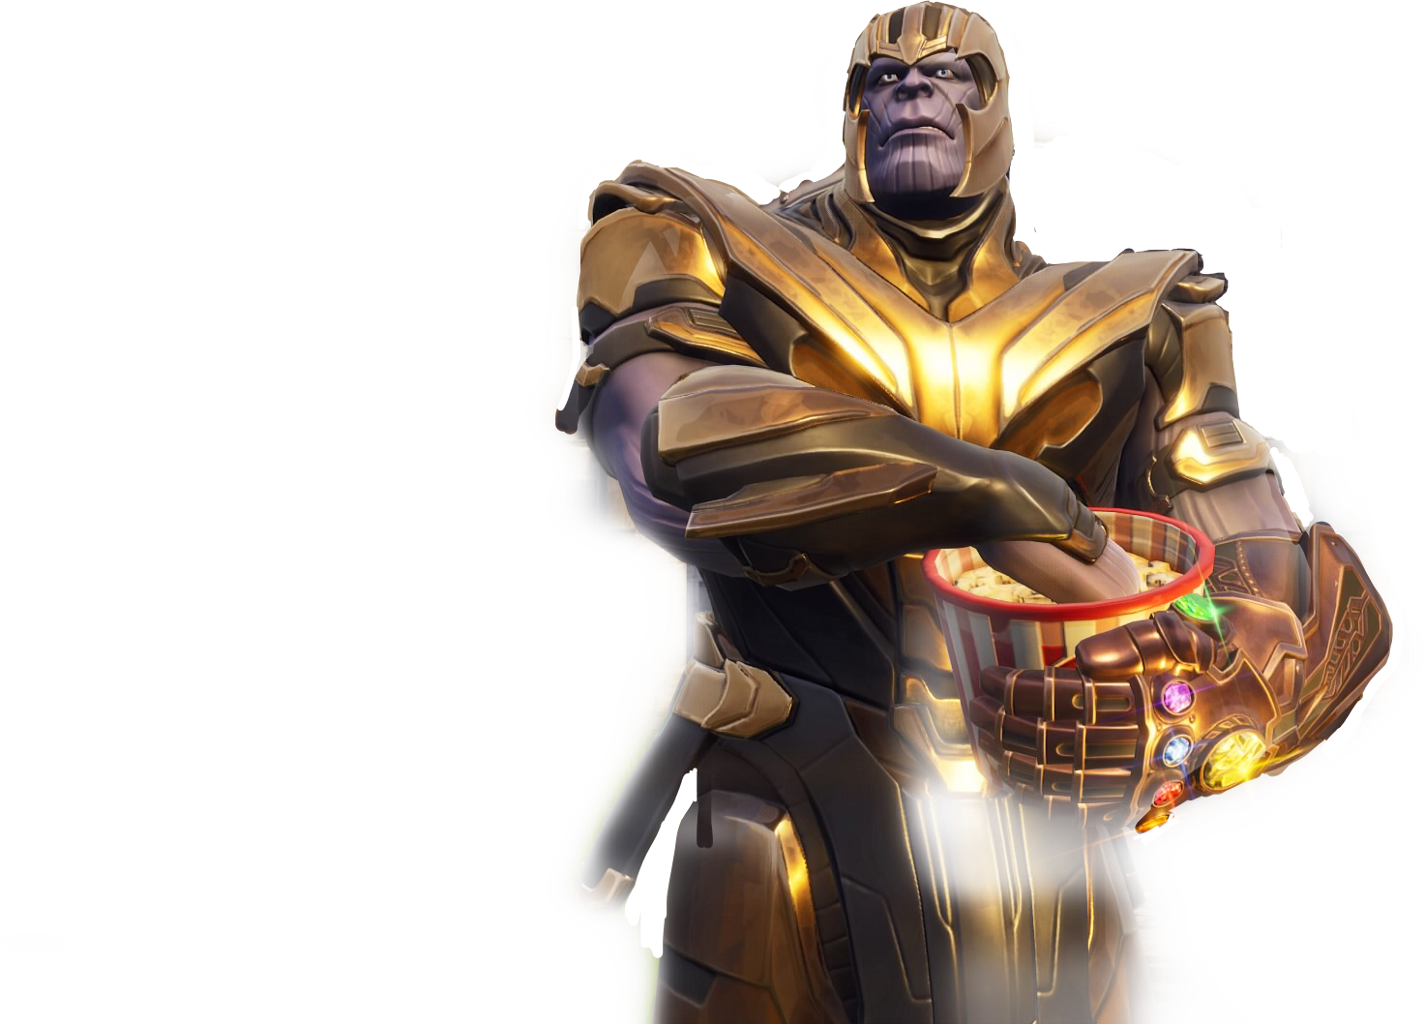 Thanos fortnite png. Interesting freetoedit report abuse